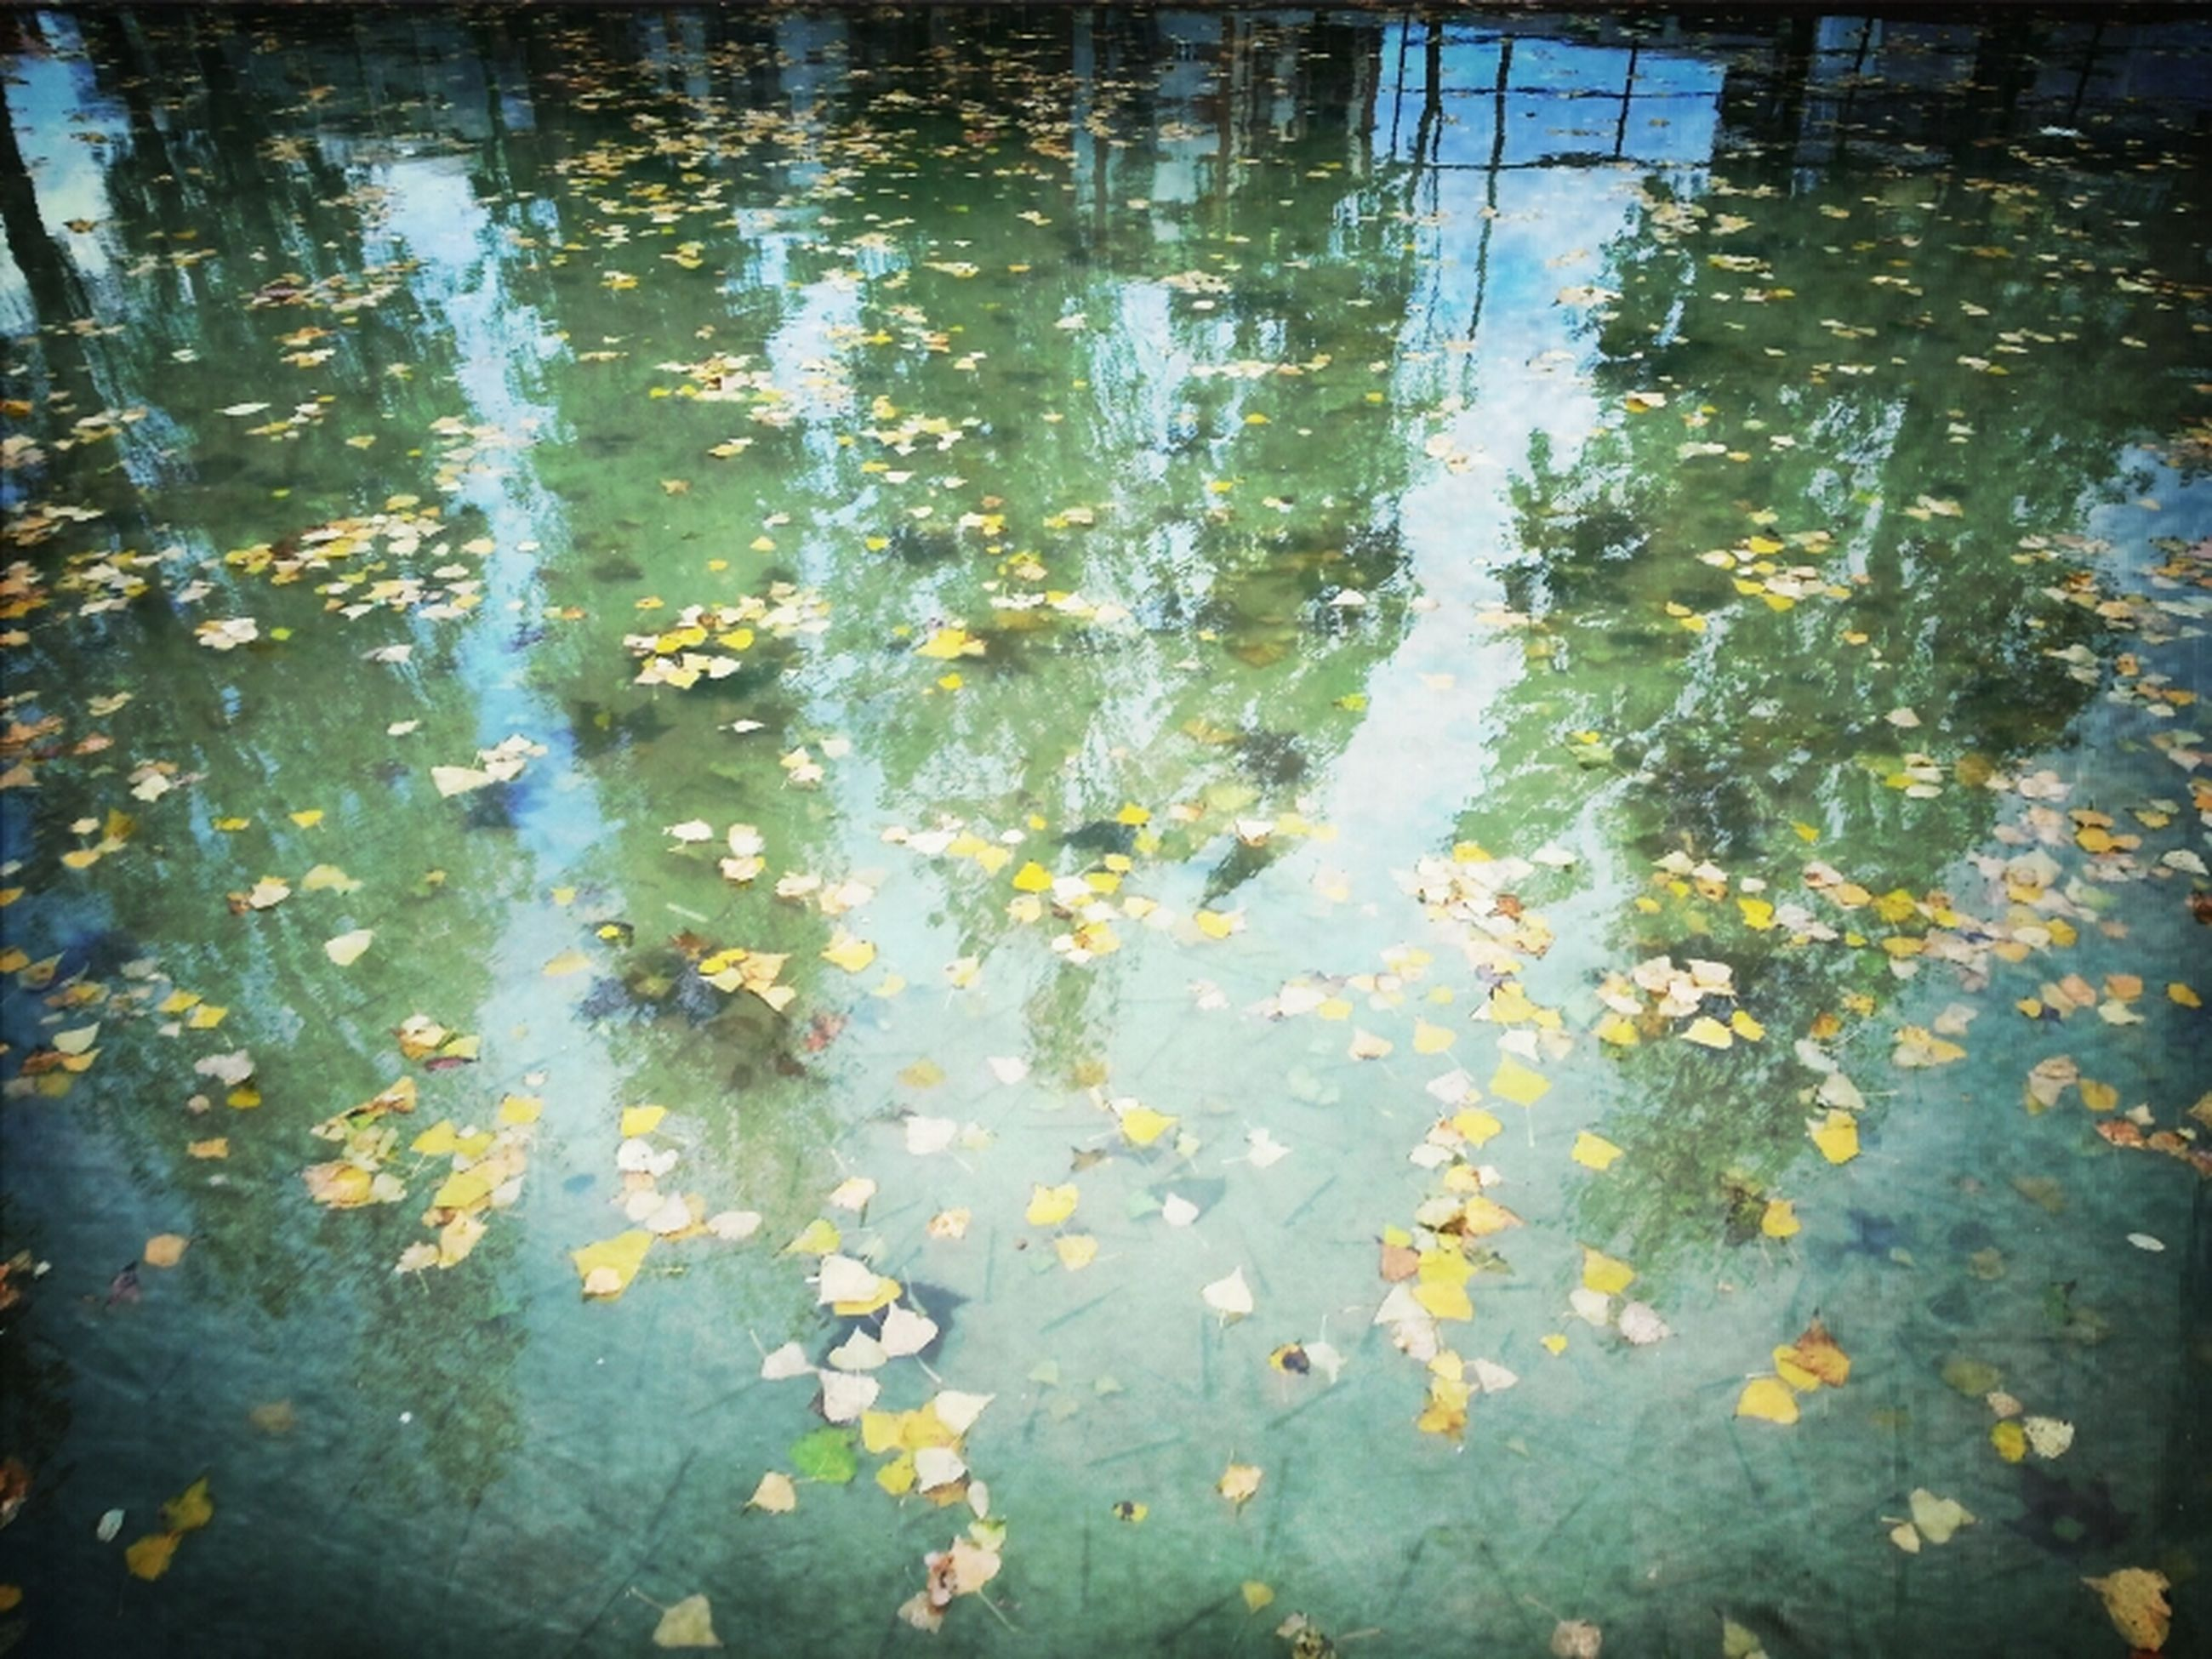 water, reflection, high angle view, lake, pond, nature, leaf, floating on water, animal themes, tranquility, day, beauty in nature, plant, outdoors, waterfront, swimming, no people, puddle, wet, growth